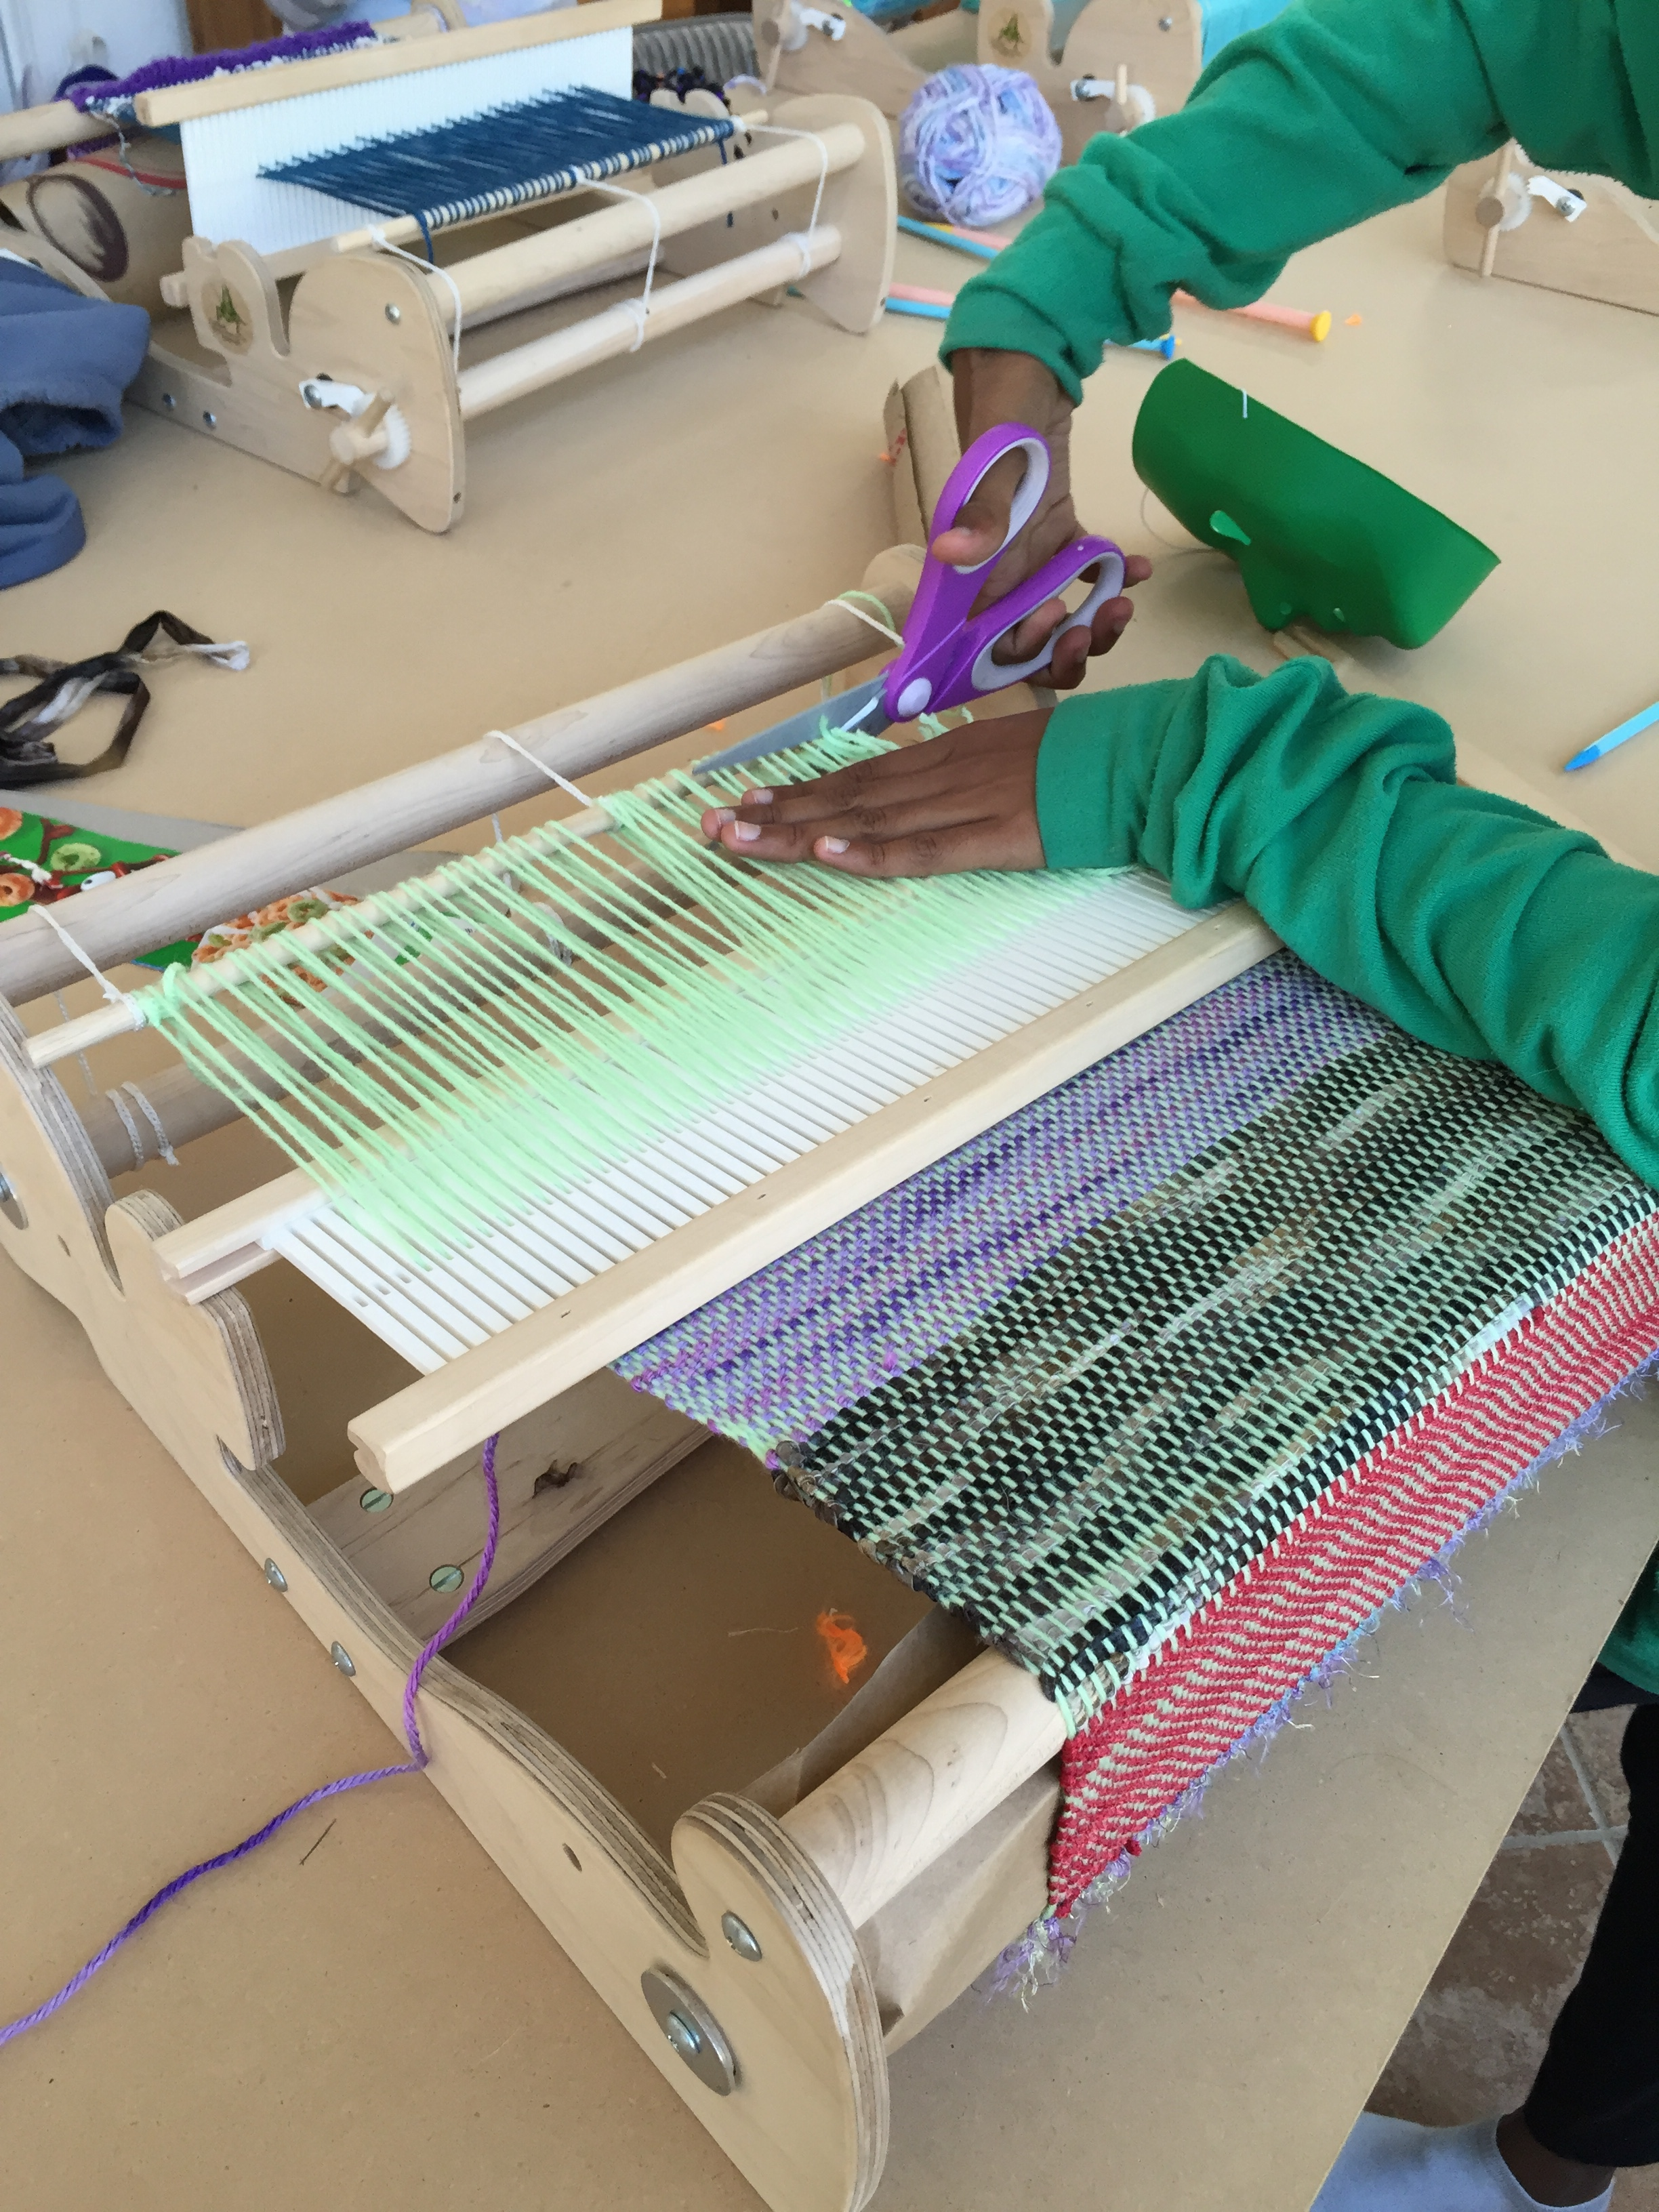 Cutting her weaving off the loom.